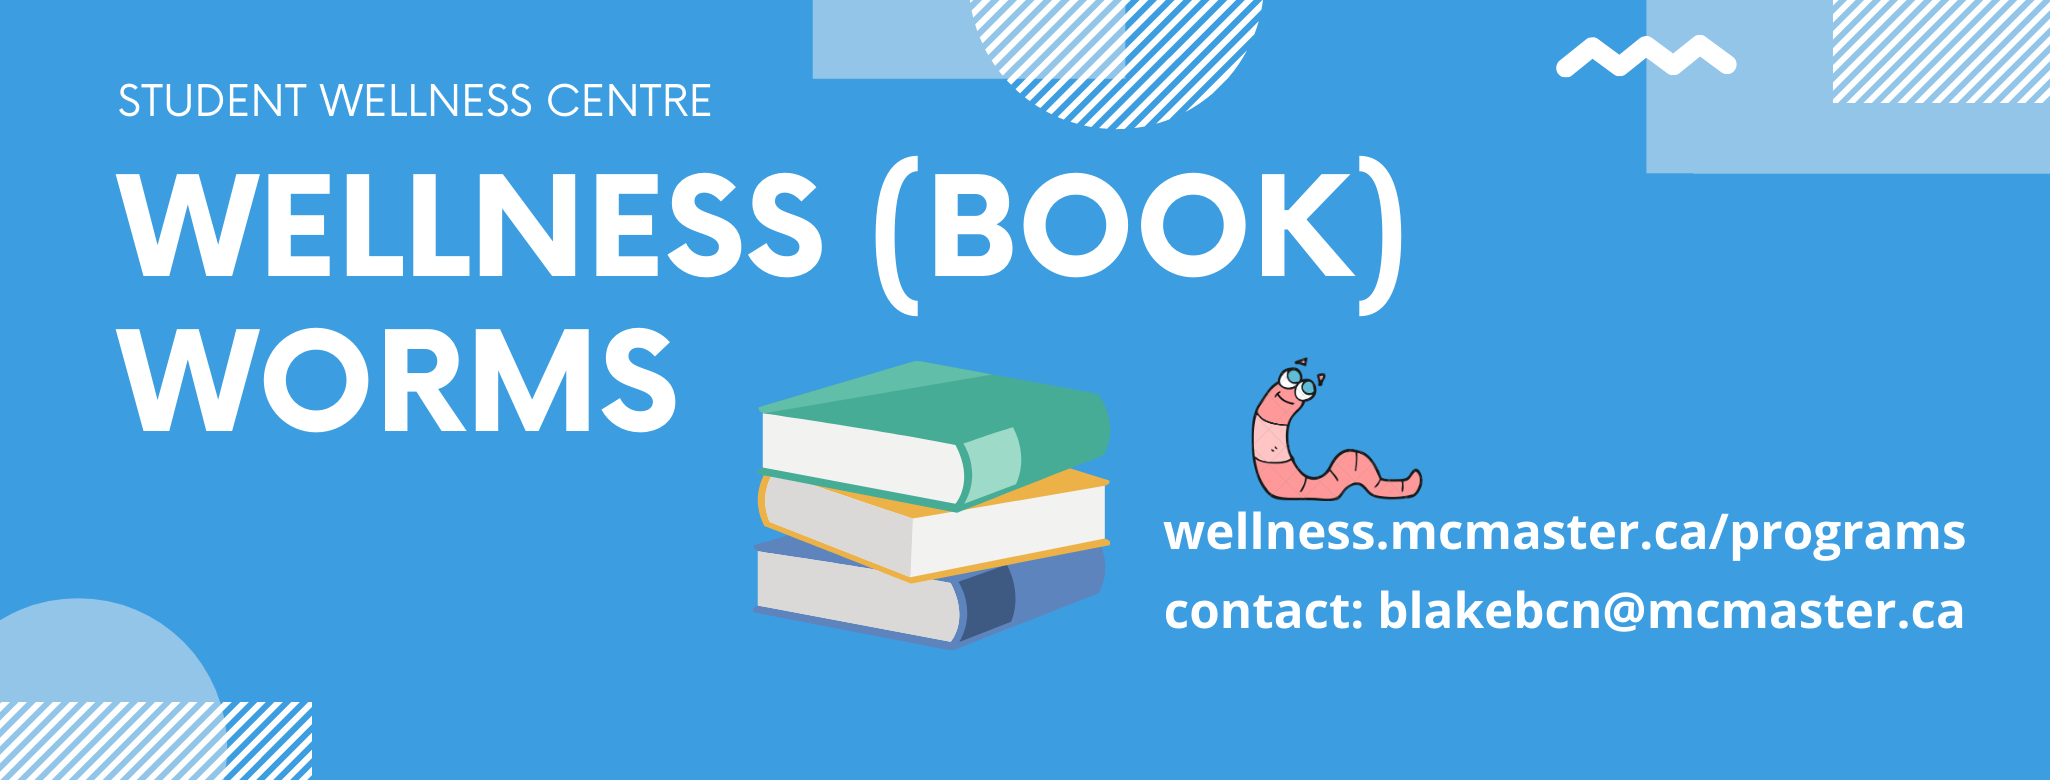 Wellness Book Worms